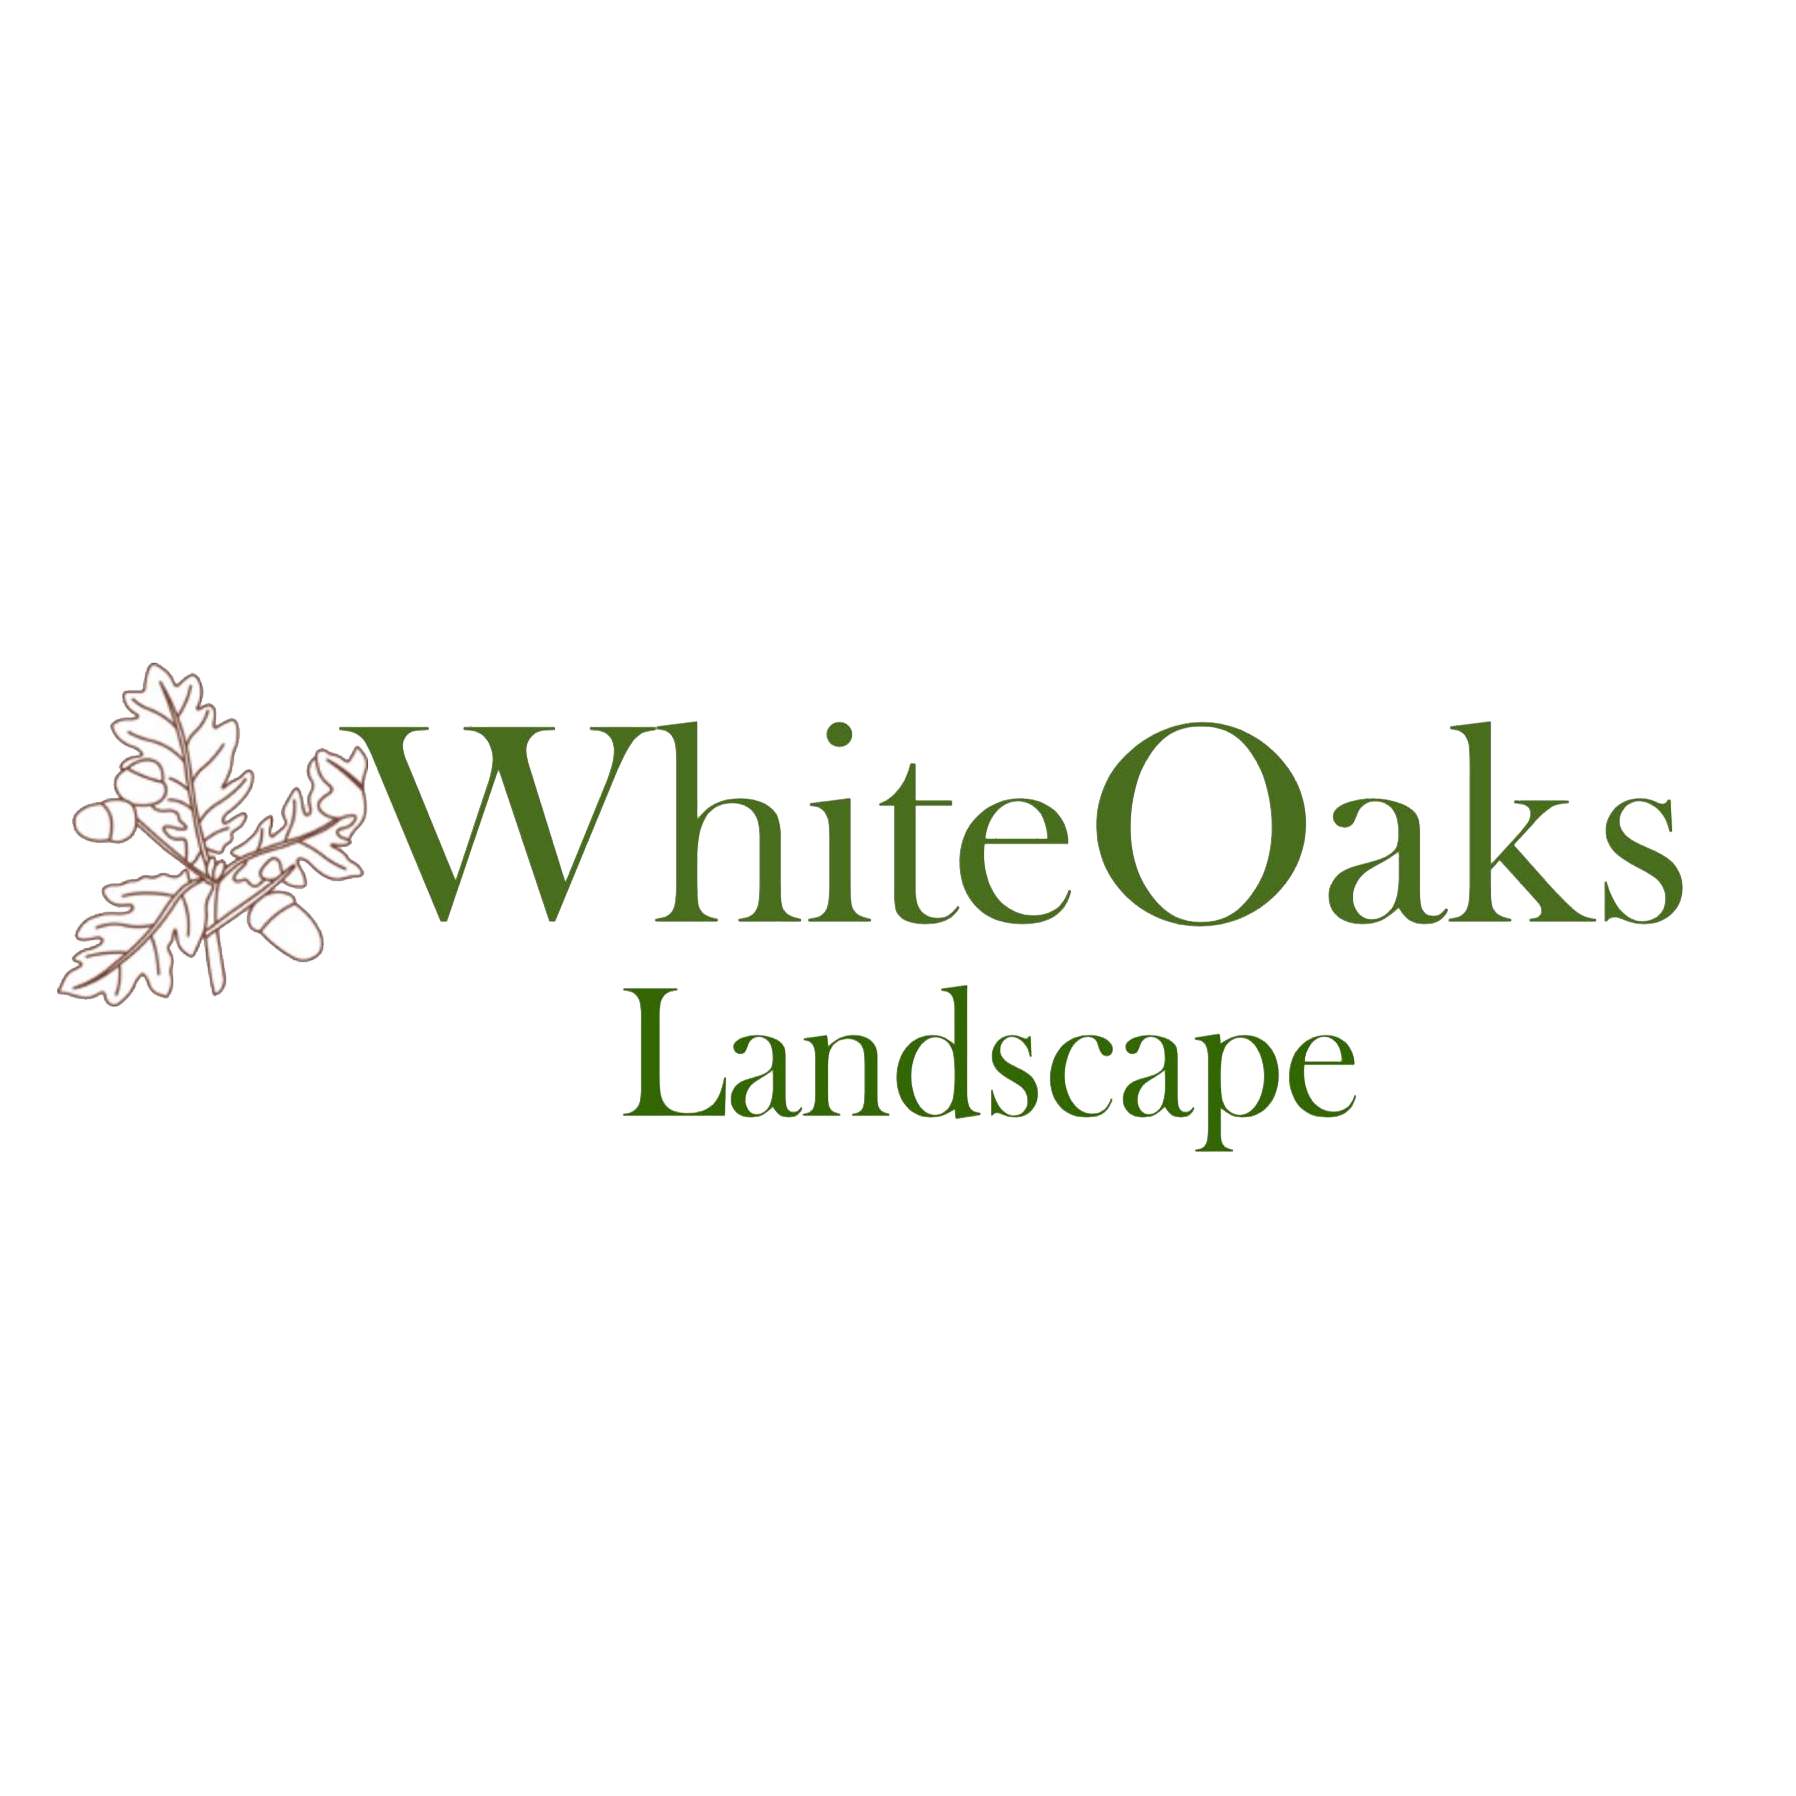 WhiteOaks Landscape